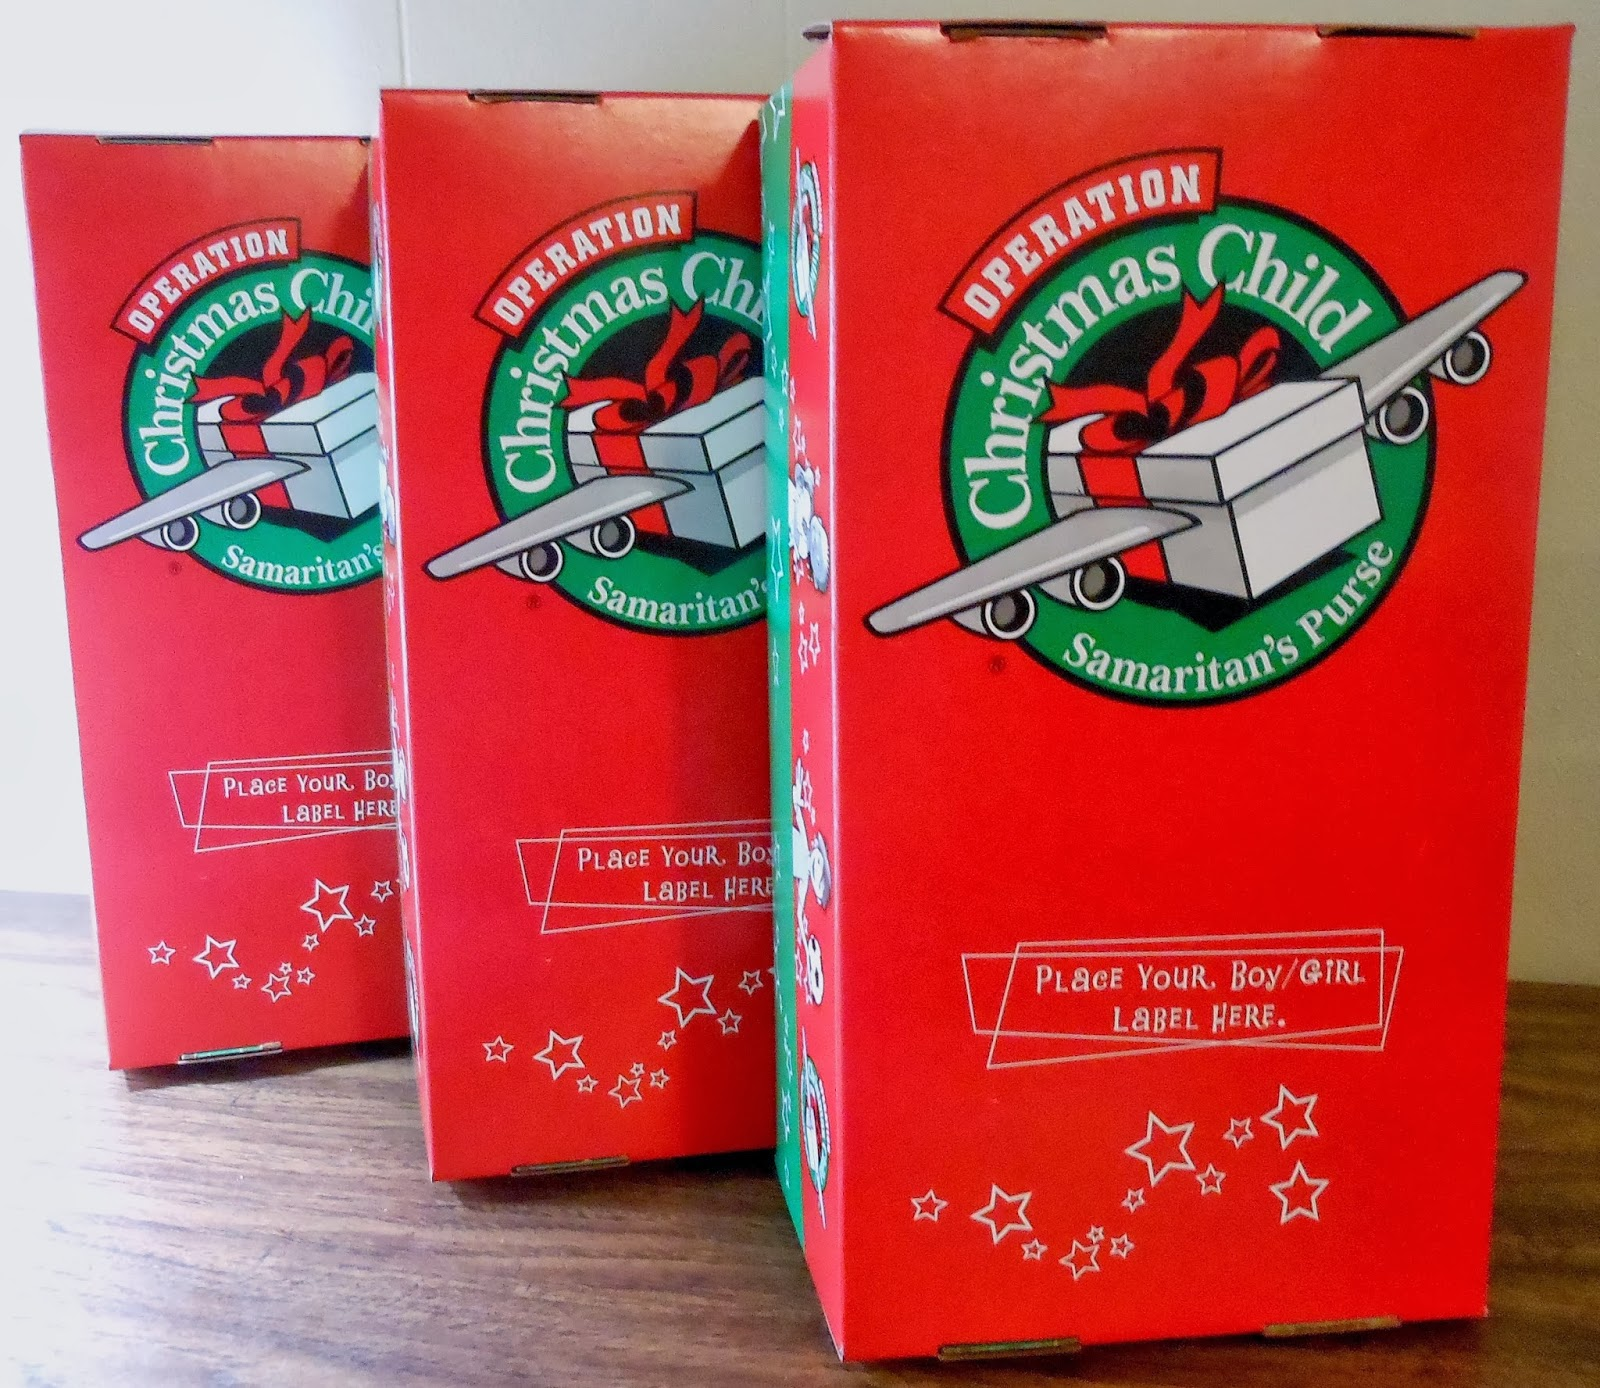 for two its time to start packing those operation christmas child shoe boxes that link will tell you all about packing a shoe box - Operation Christmas Child Shoebox